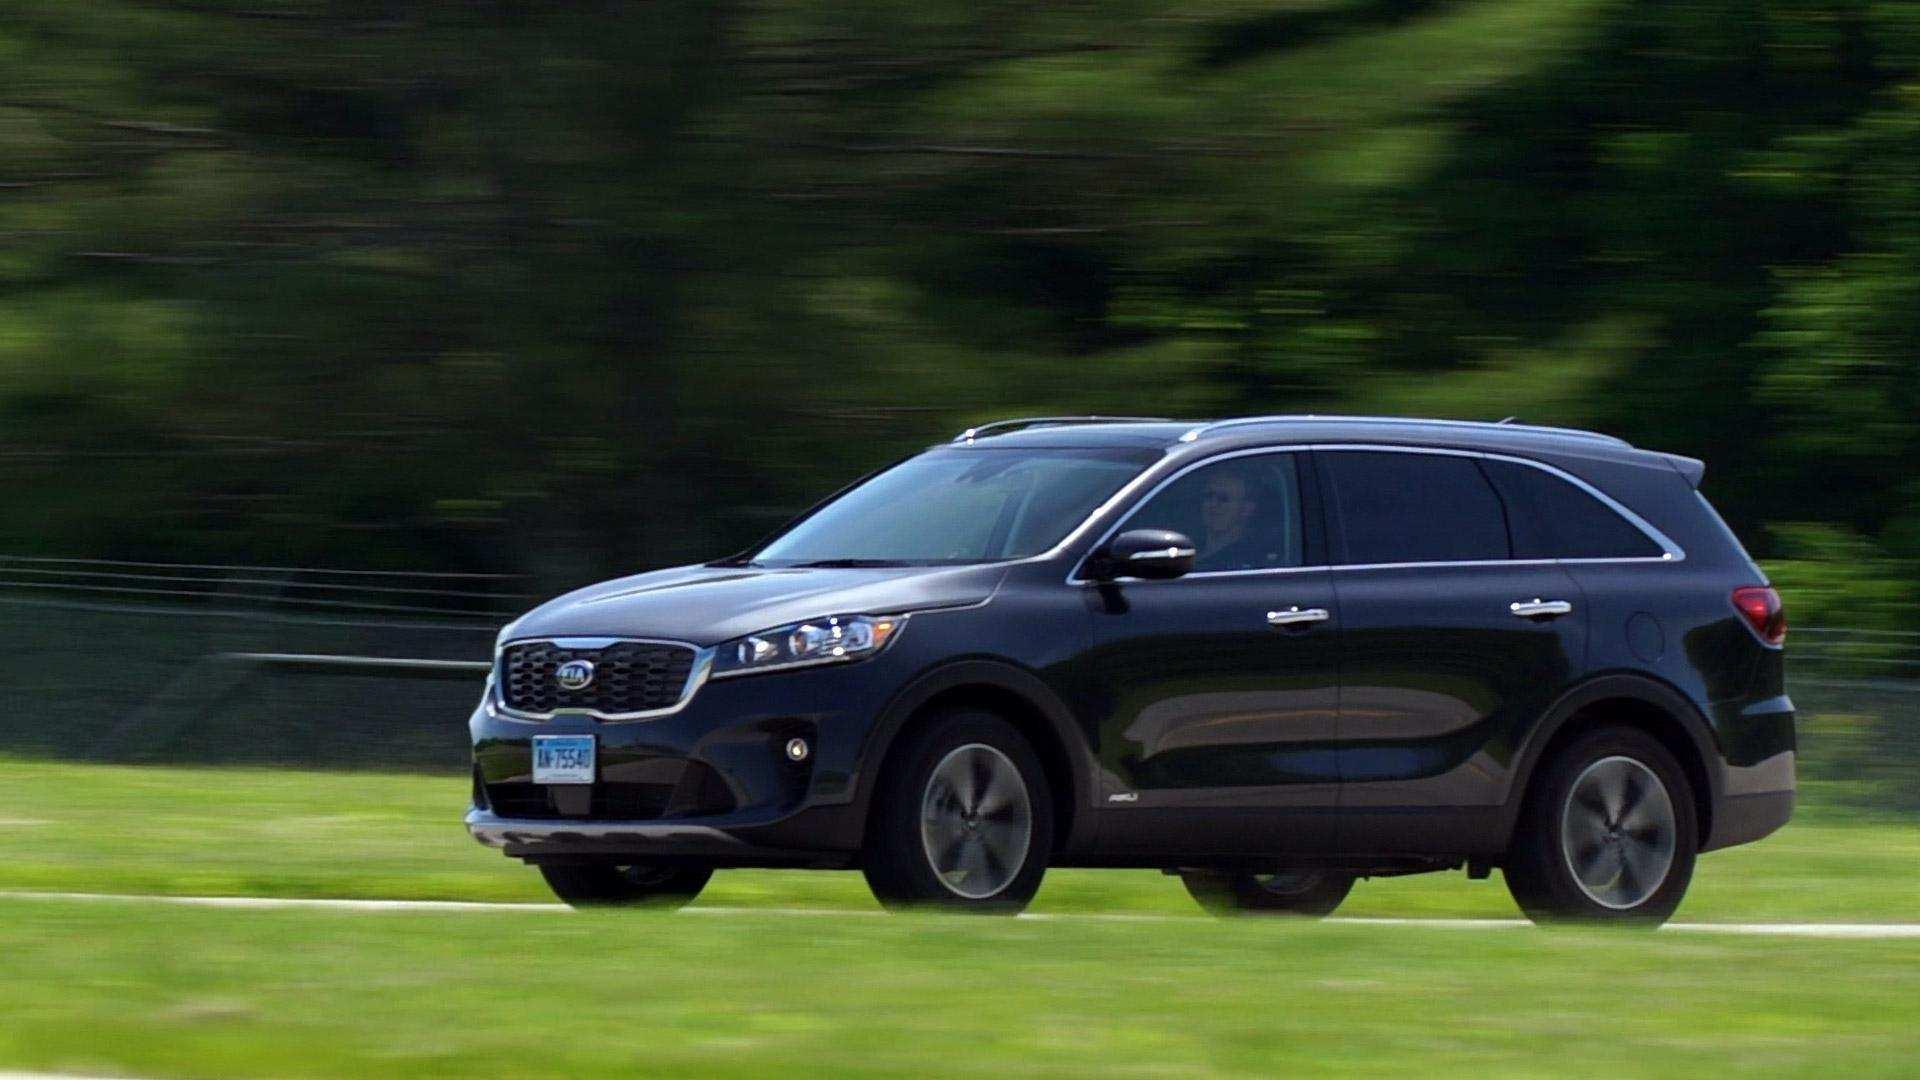 79 A Kia Sorento 2019 Video Release Date And Concept